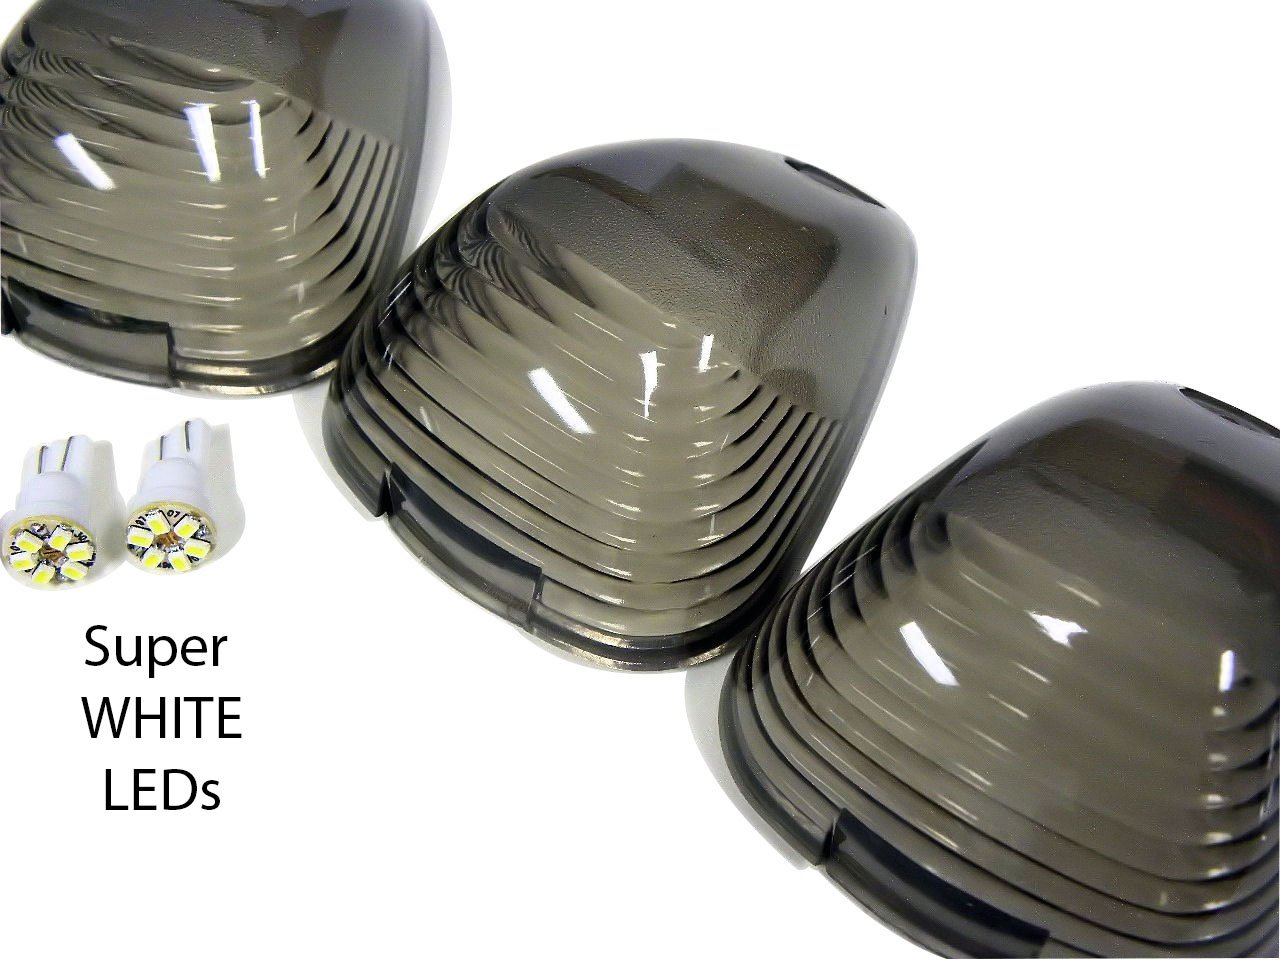 Cab Roof Lights 5 Five Piece Pc Covers In Smoke Crl 06 Ford F 250 Factory Switch Wiring 264142bk Super White Led Bulbs For 99 14 F250 F350 F450 F550 F650 Superduty Excursion